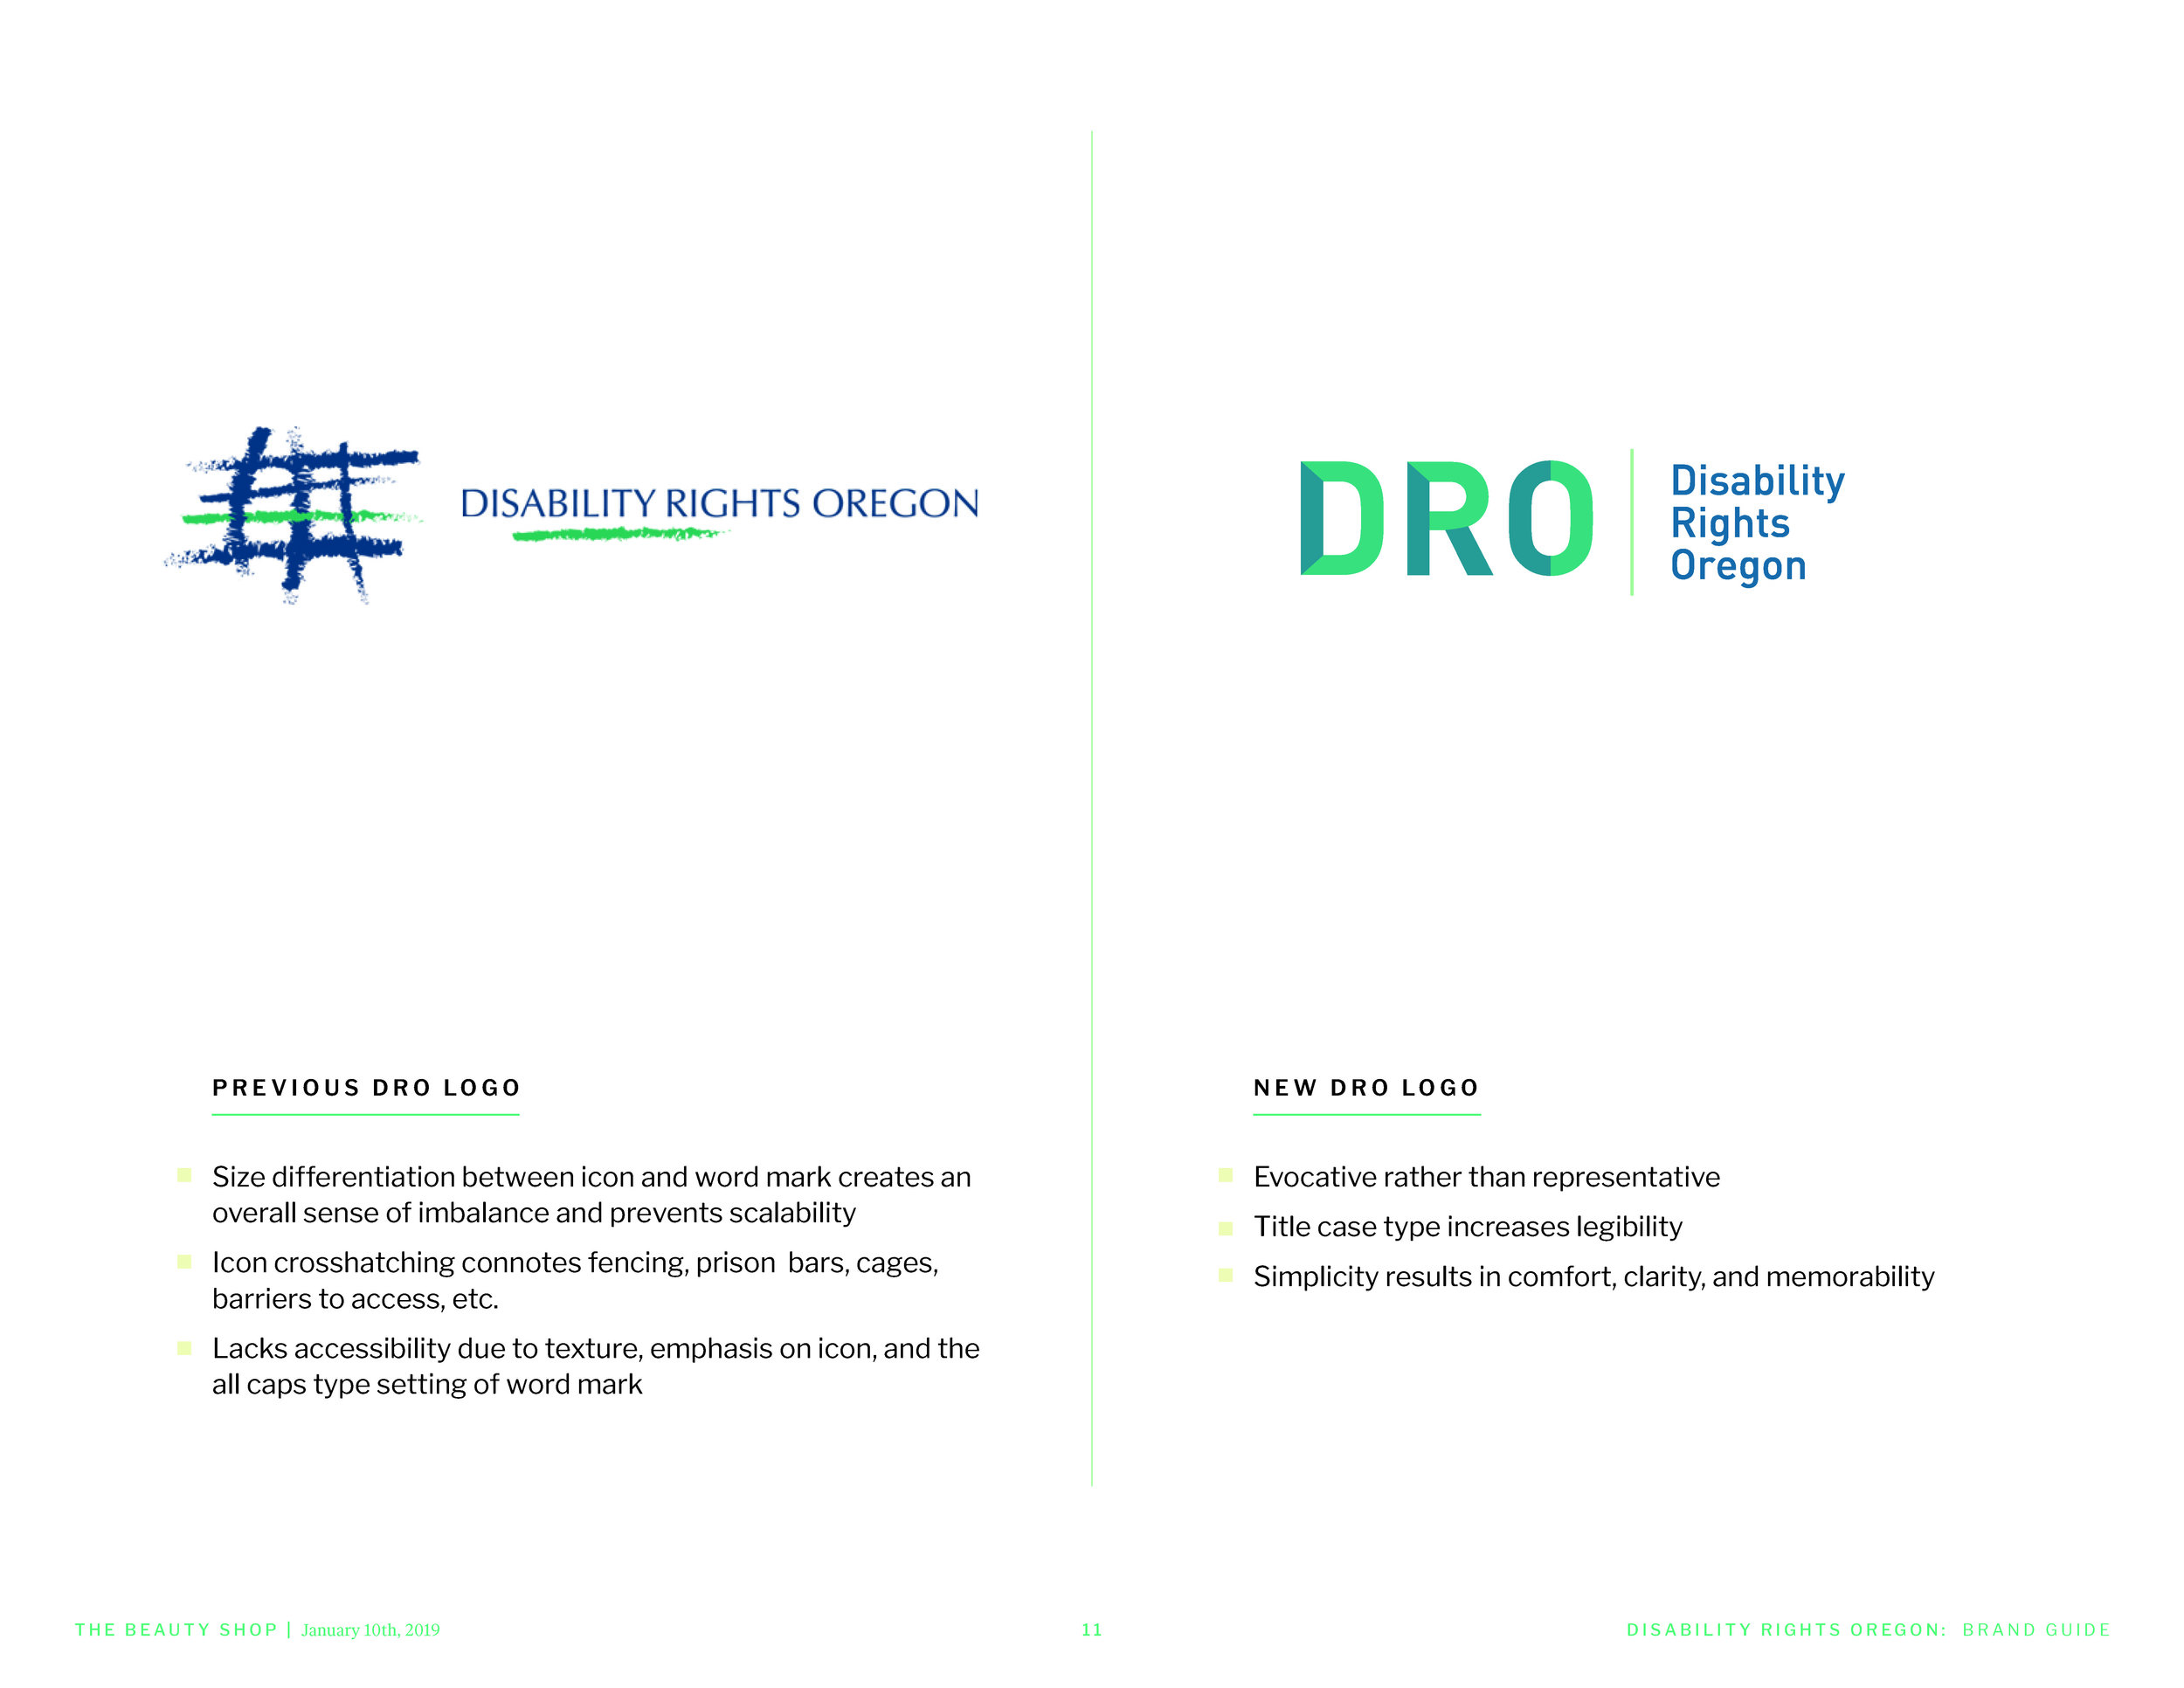 DRO-brand-guide_Page_13.jpg